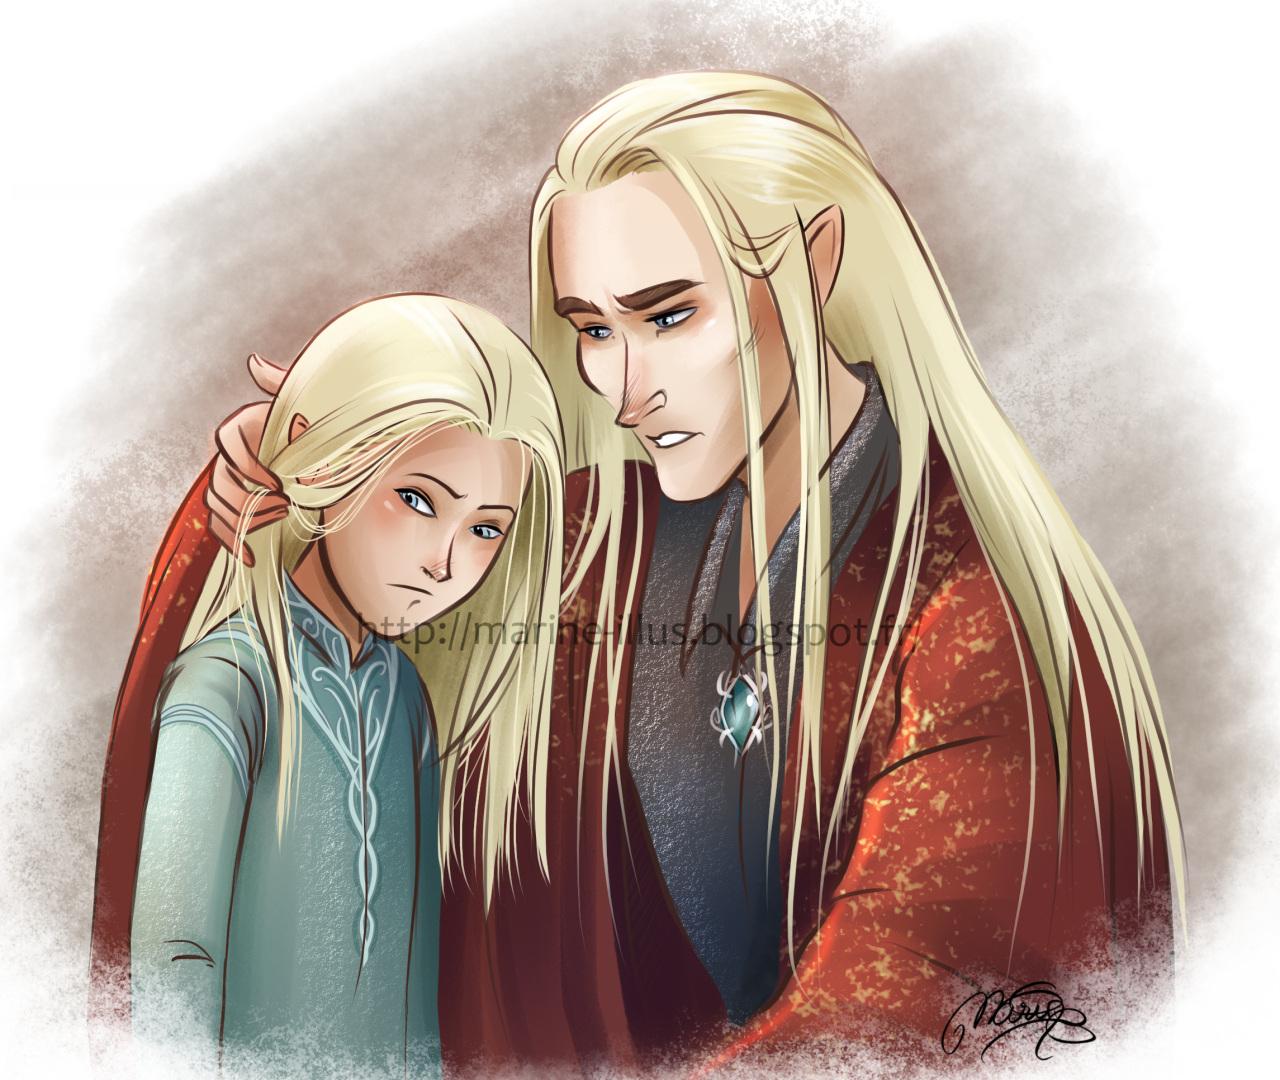 Young Legolas and Thranduil from